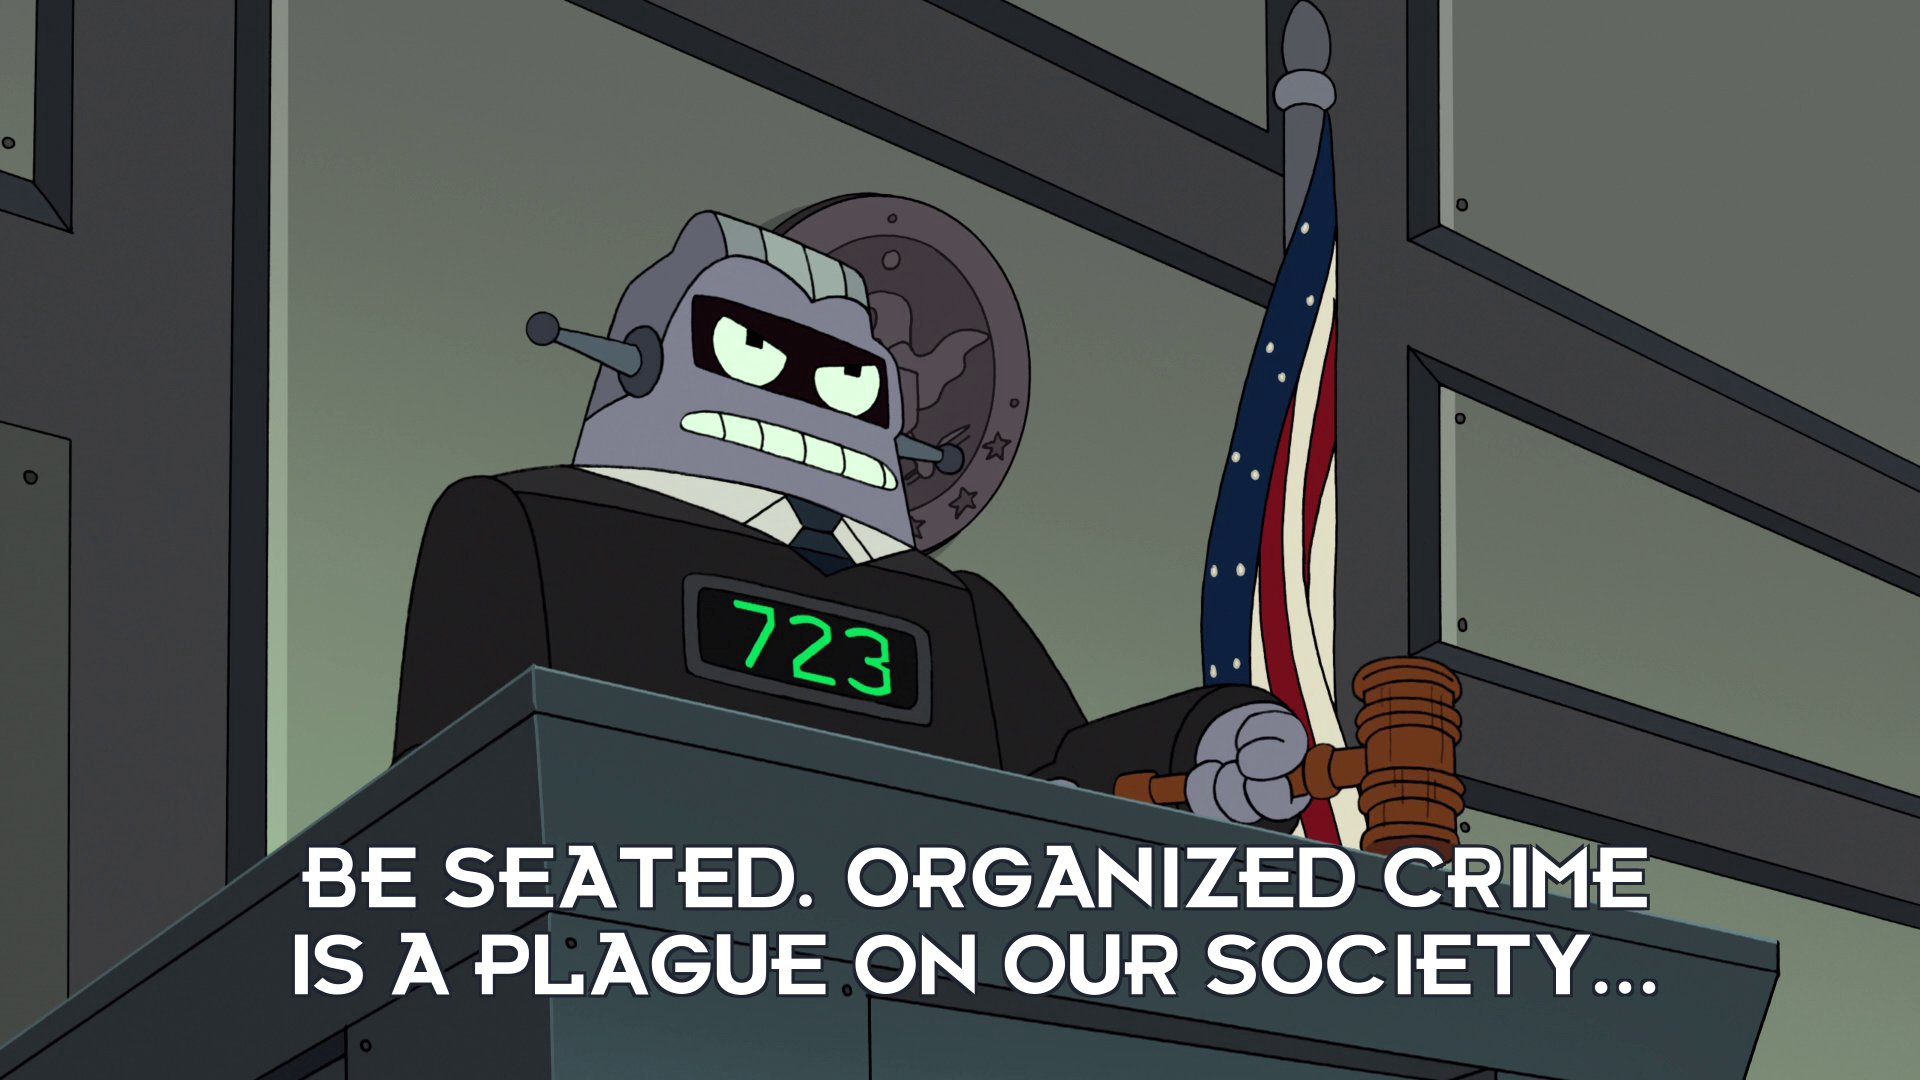 Judge 723: Be seated. Organized crime is a plague on our society...